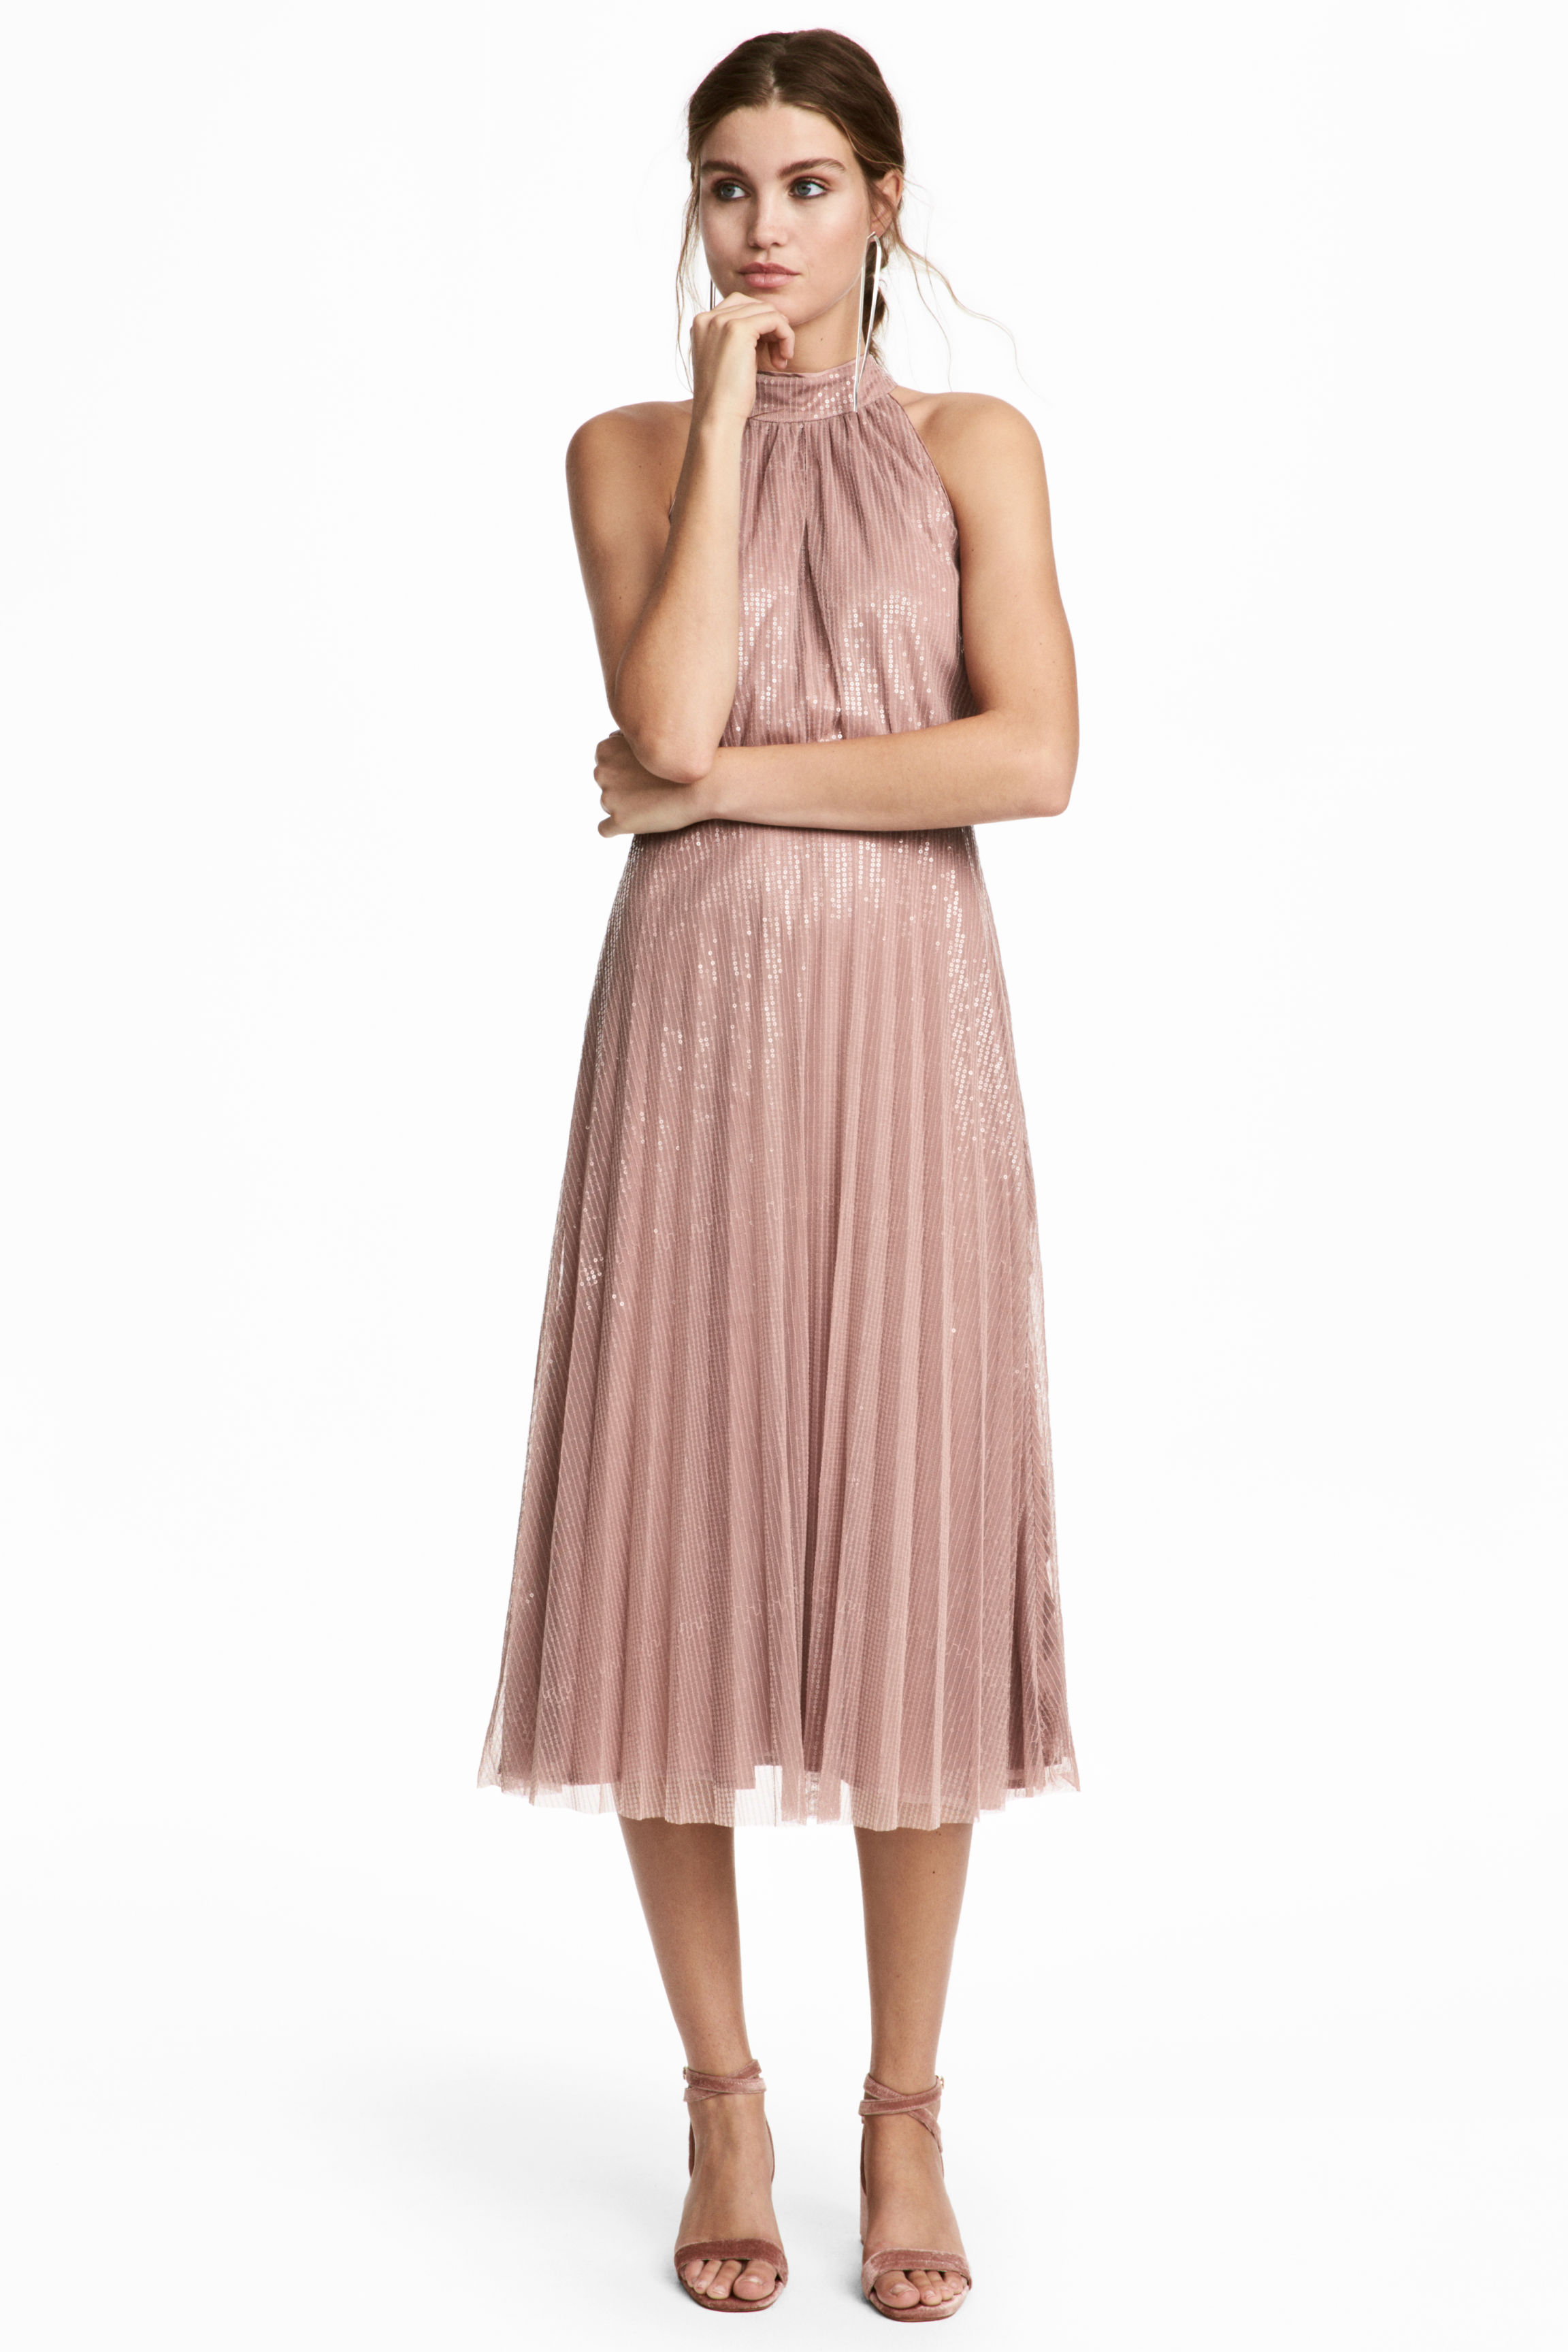 H & M Sequined Dark Powder Pink Dress - We Select Dresses